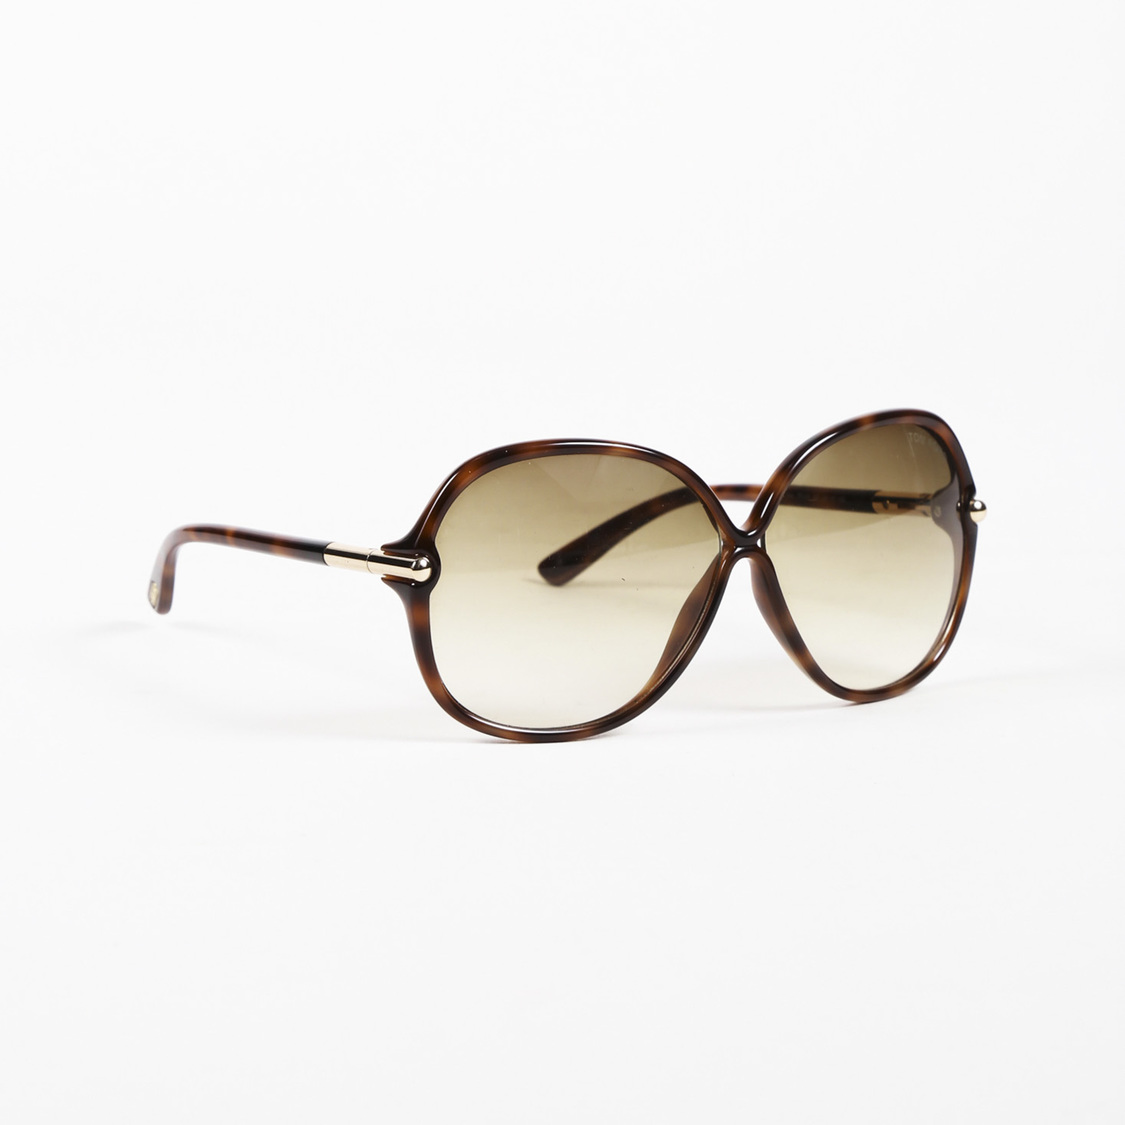 7e81cf8a71 Details about Tom Ford Brown